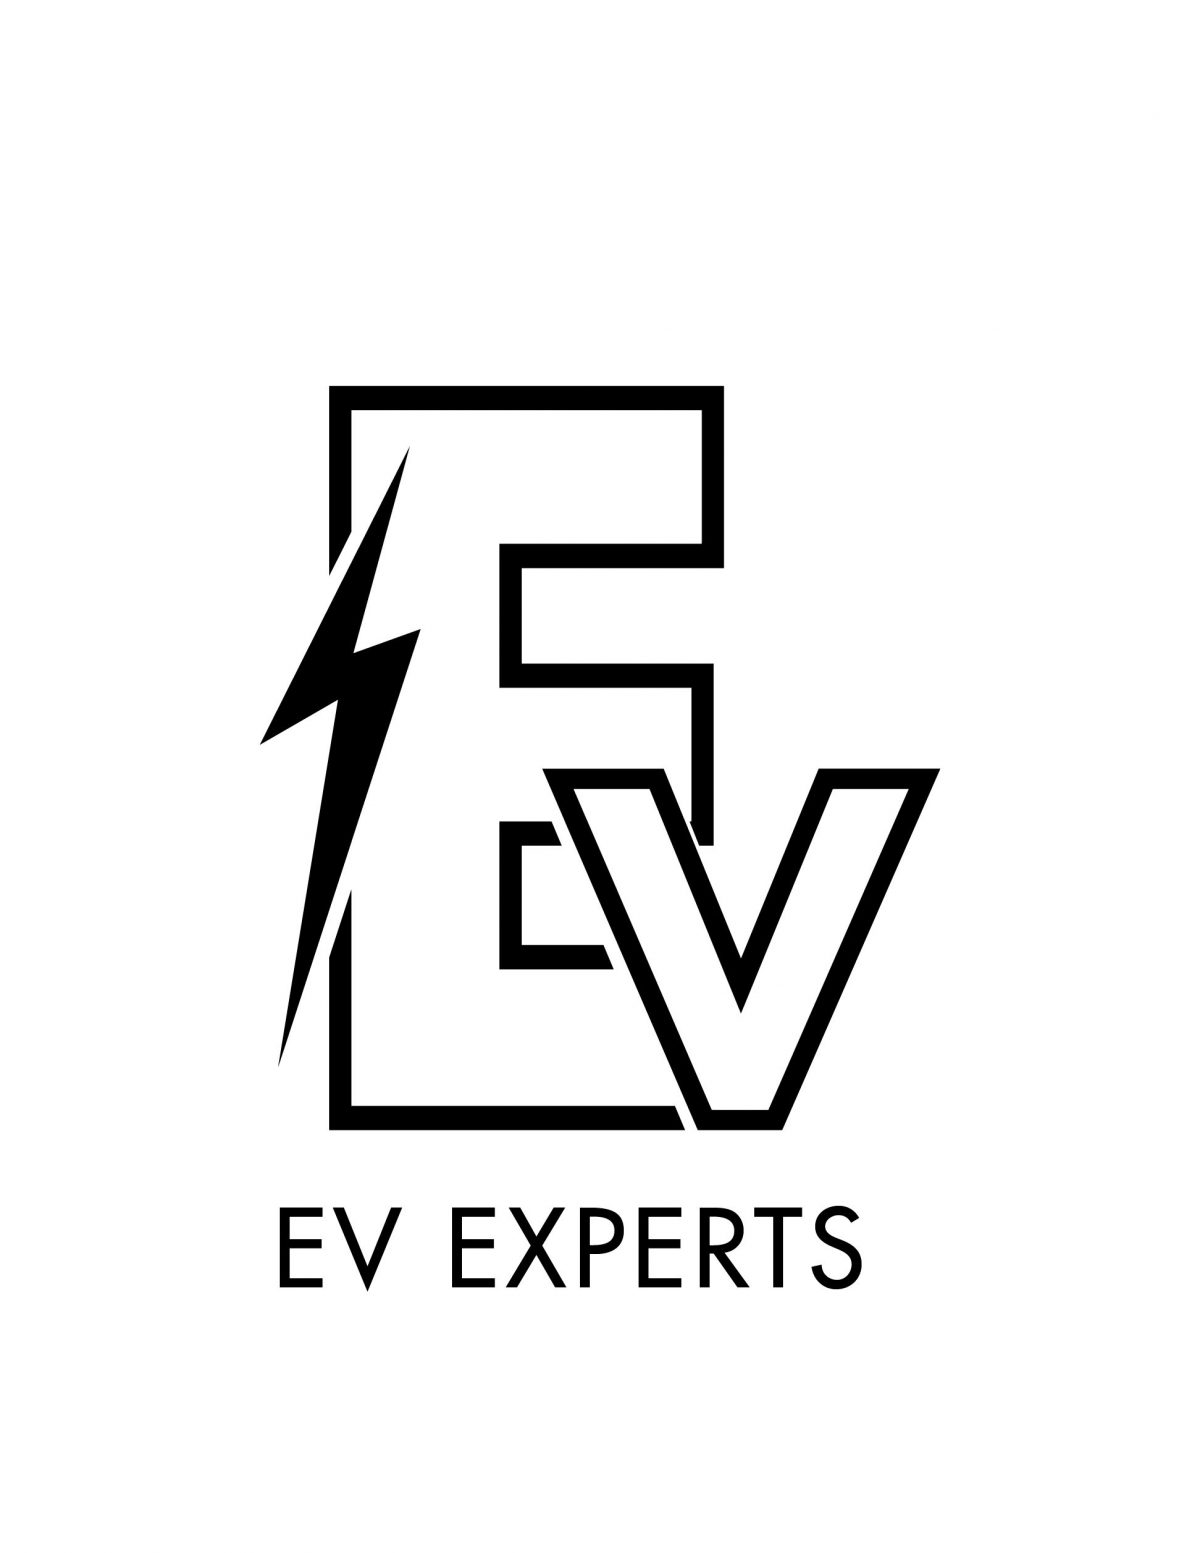 EV Experts Makes A Splash In The Electric Vehicle Market